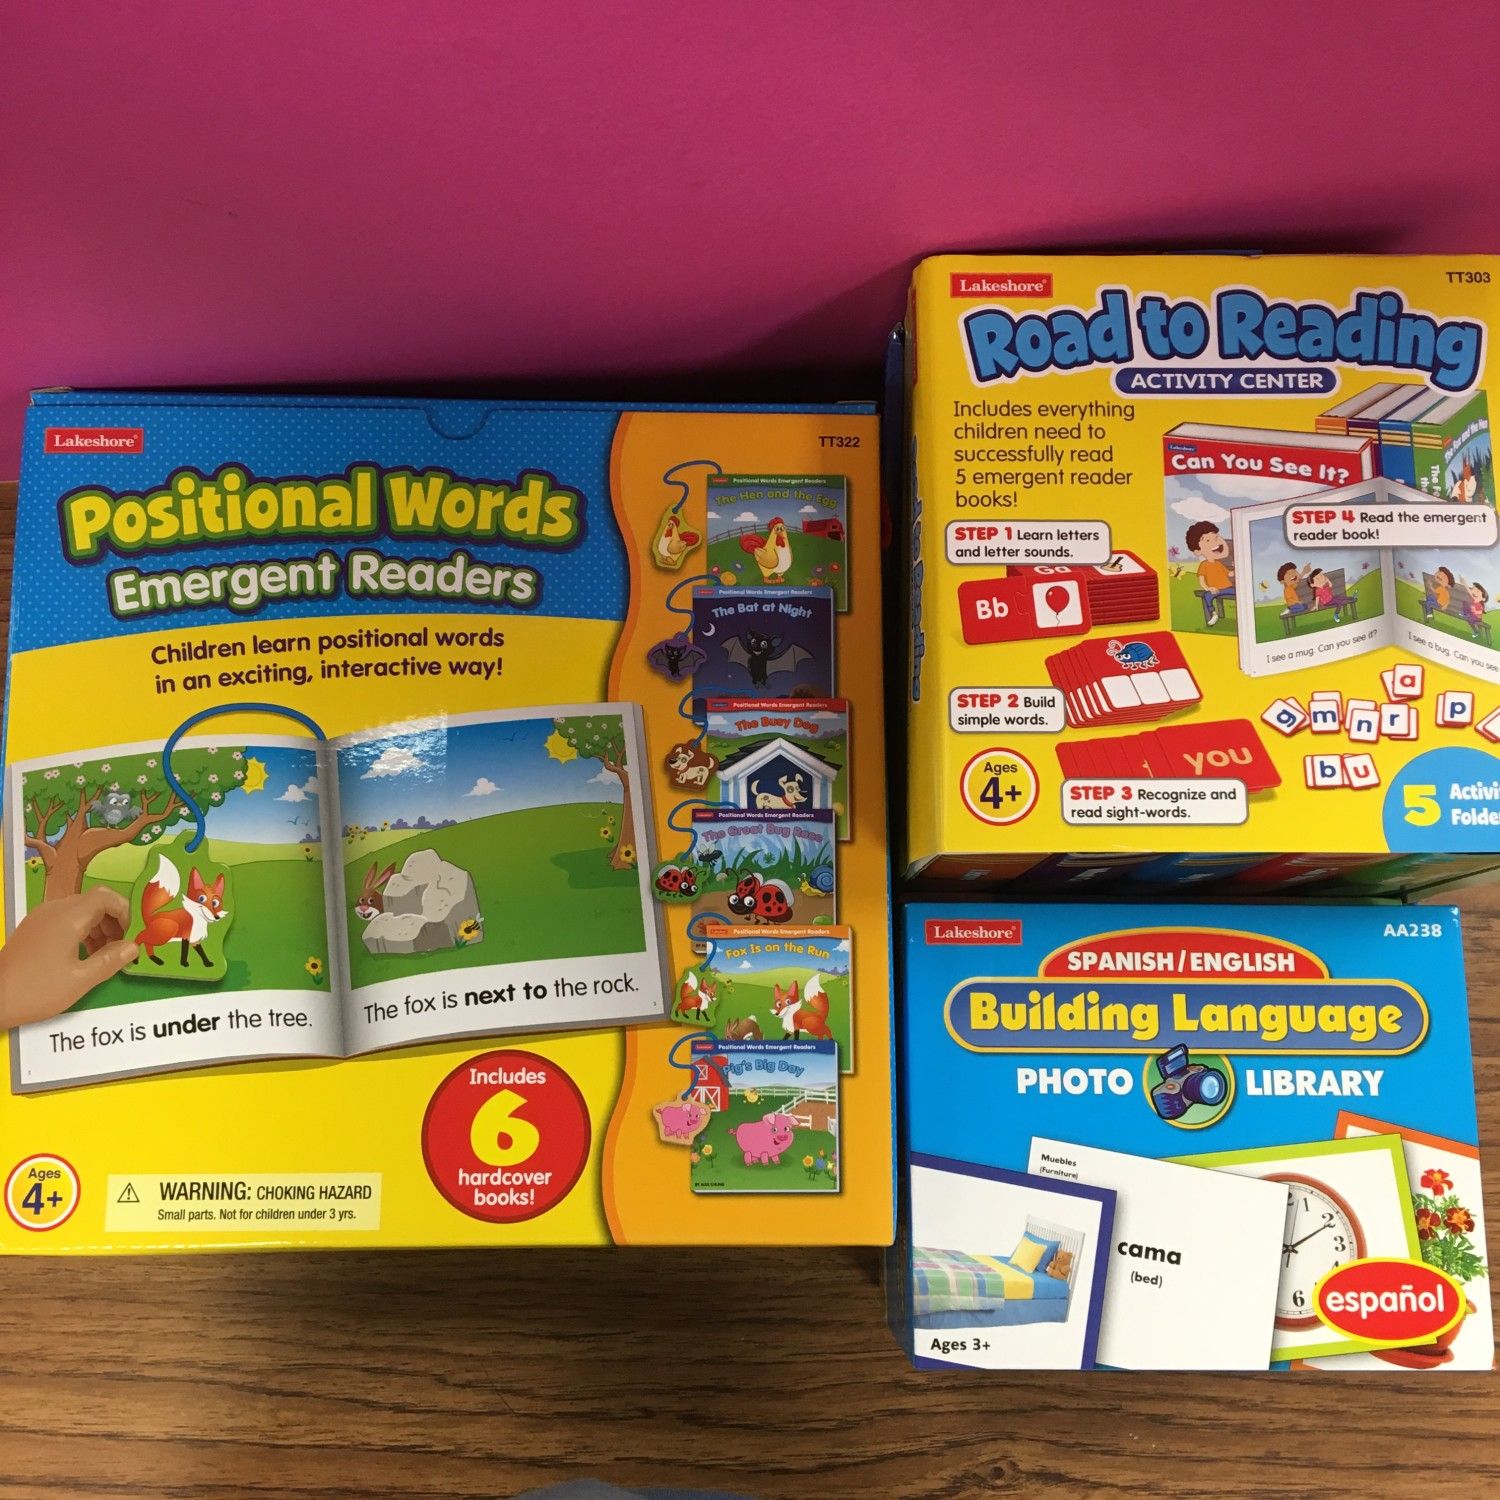 Positional Words for emergent readers, Road to Reading activity center, and Spanish/English photo library